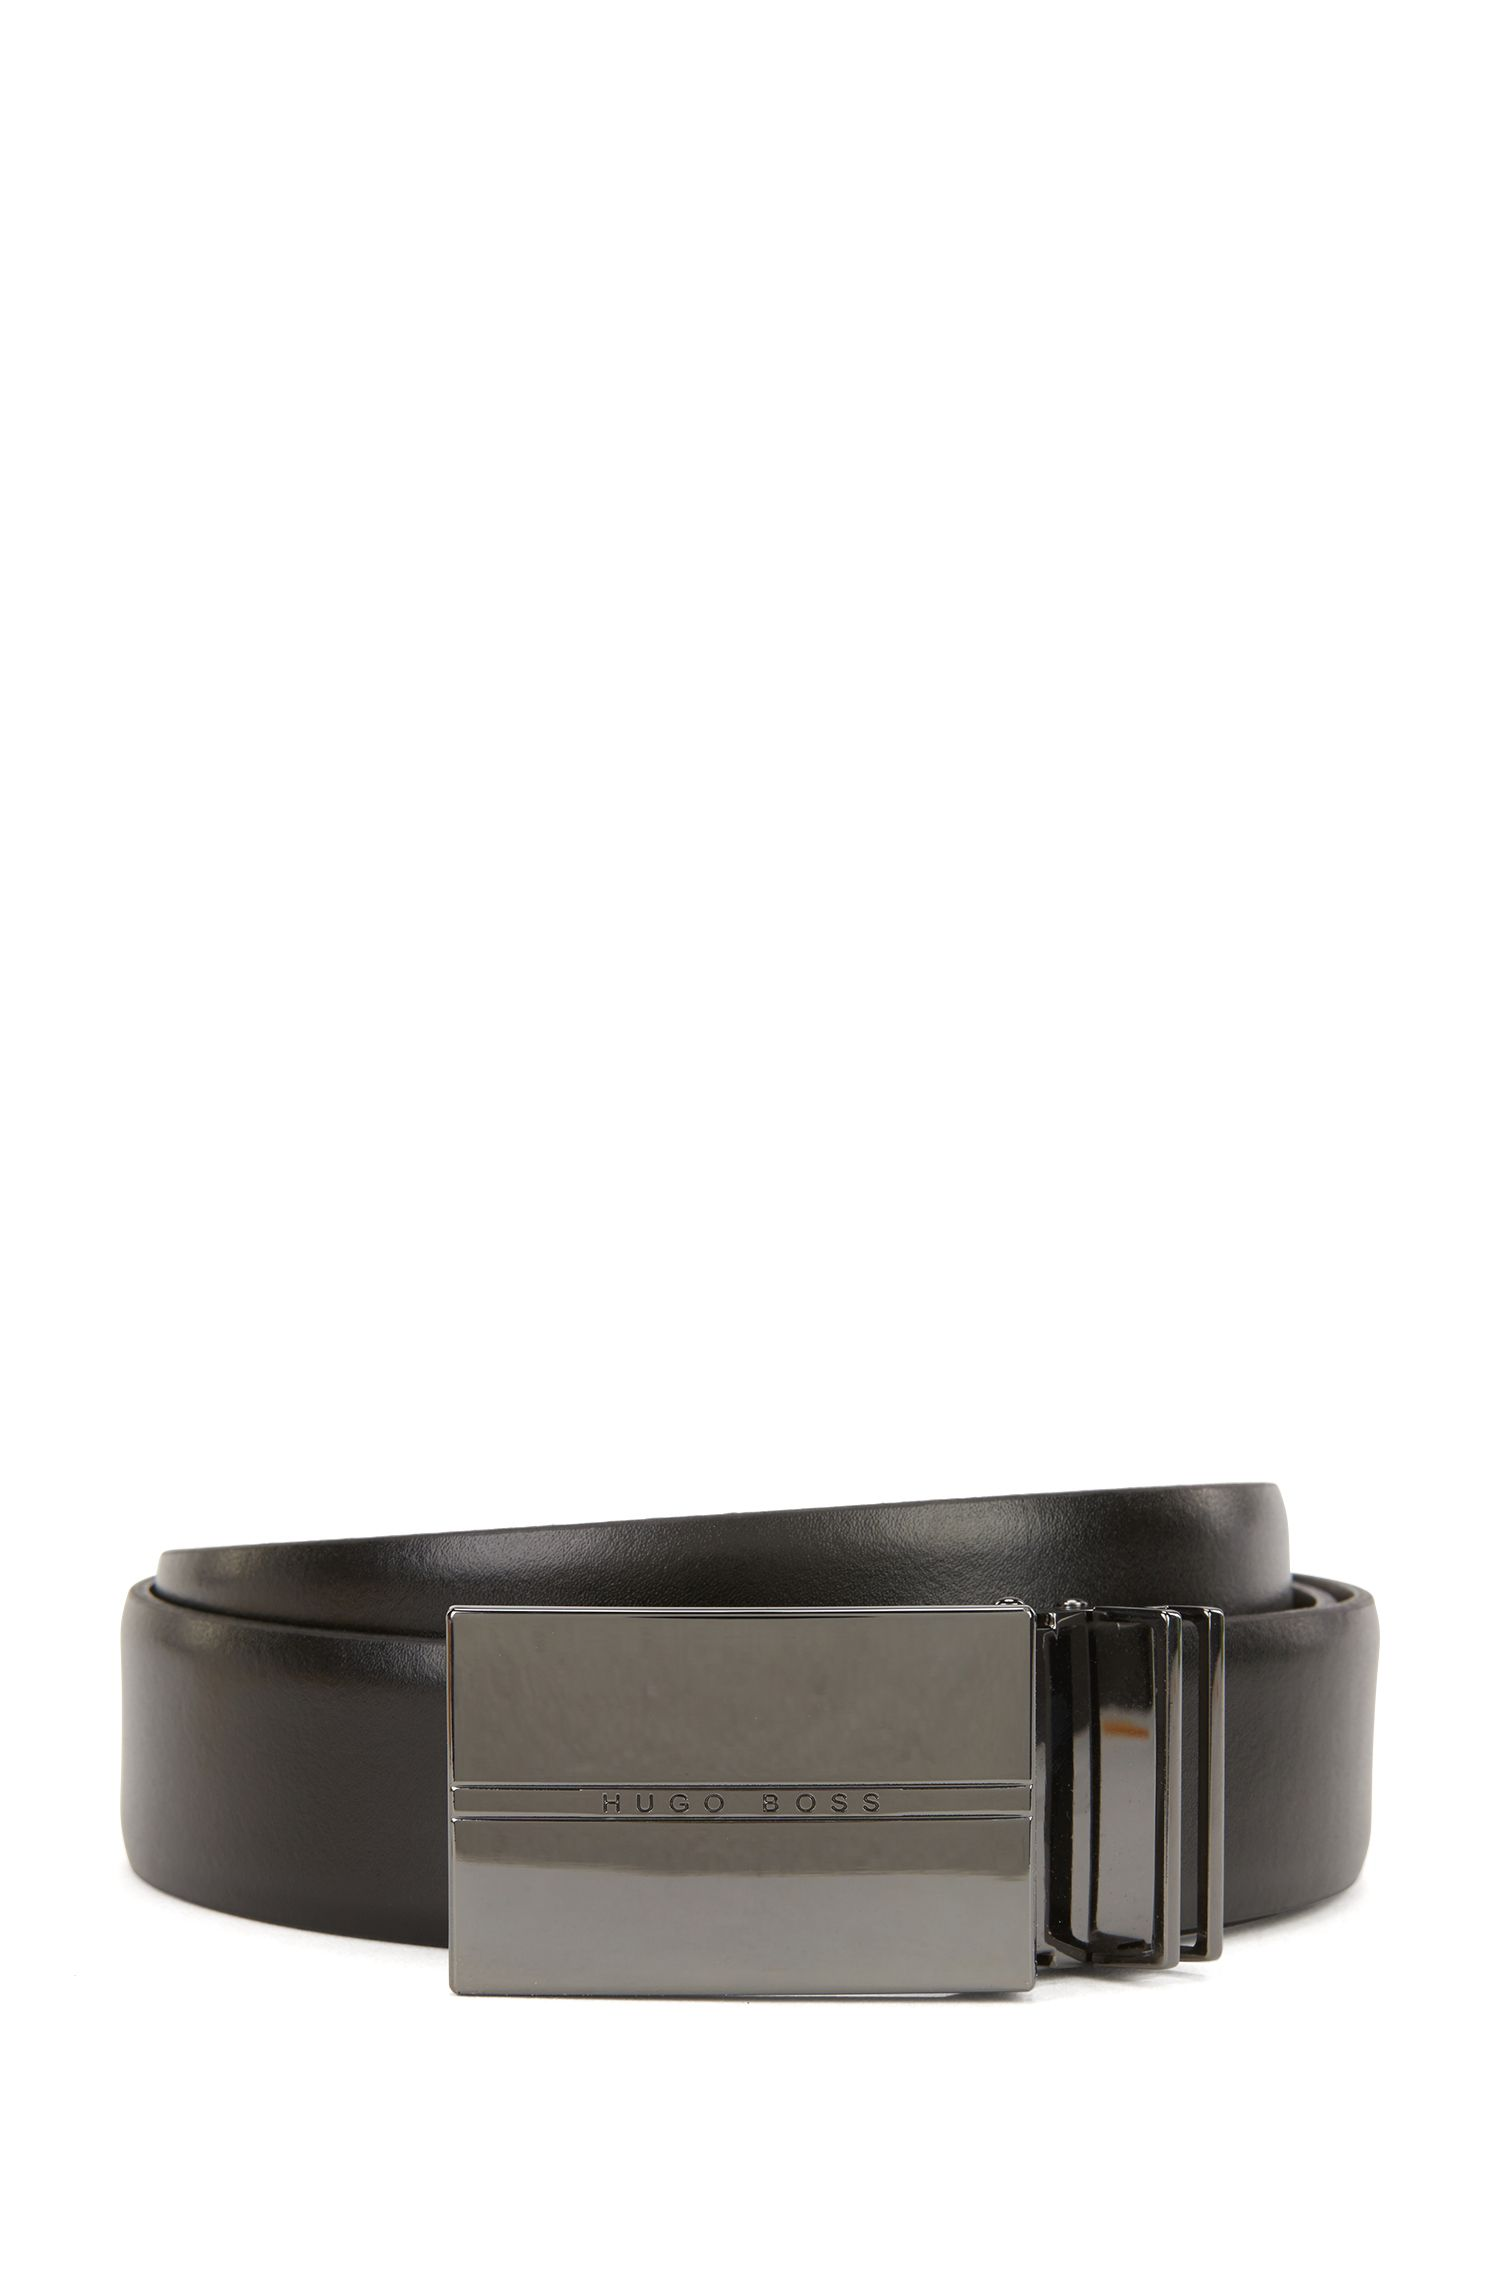 Reversible belt in smooth leather with polished gunmetal double-buckle gift set